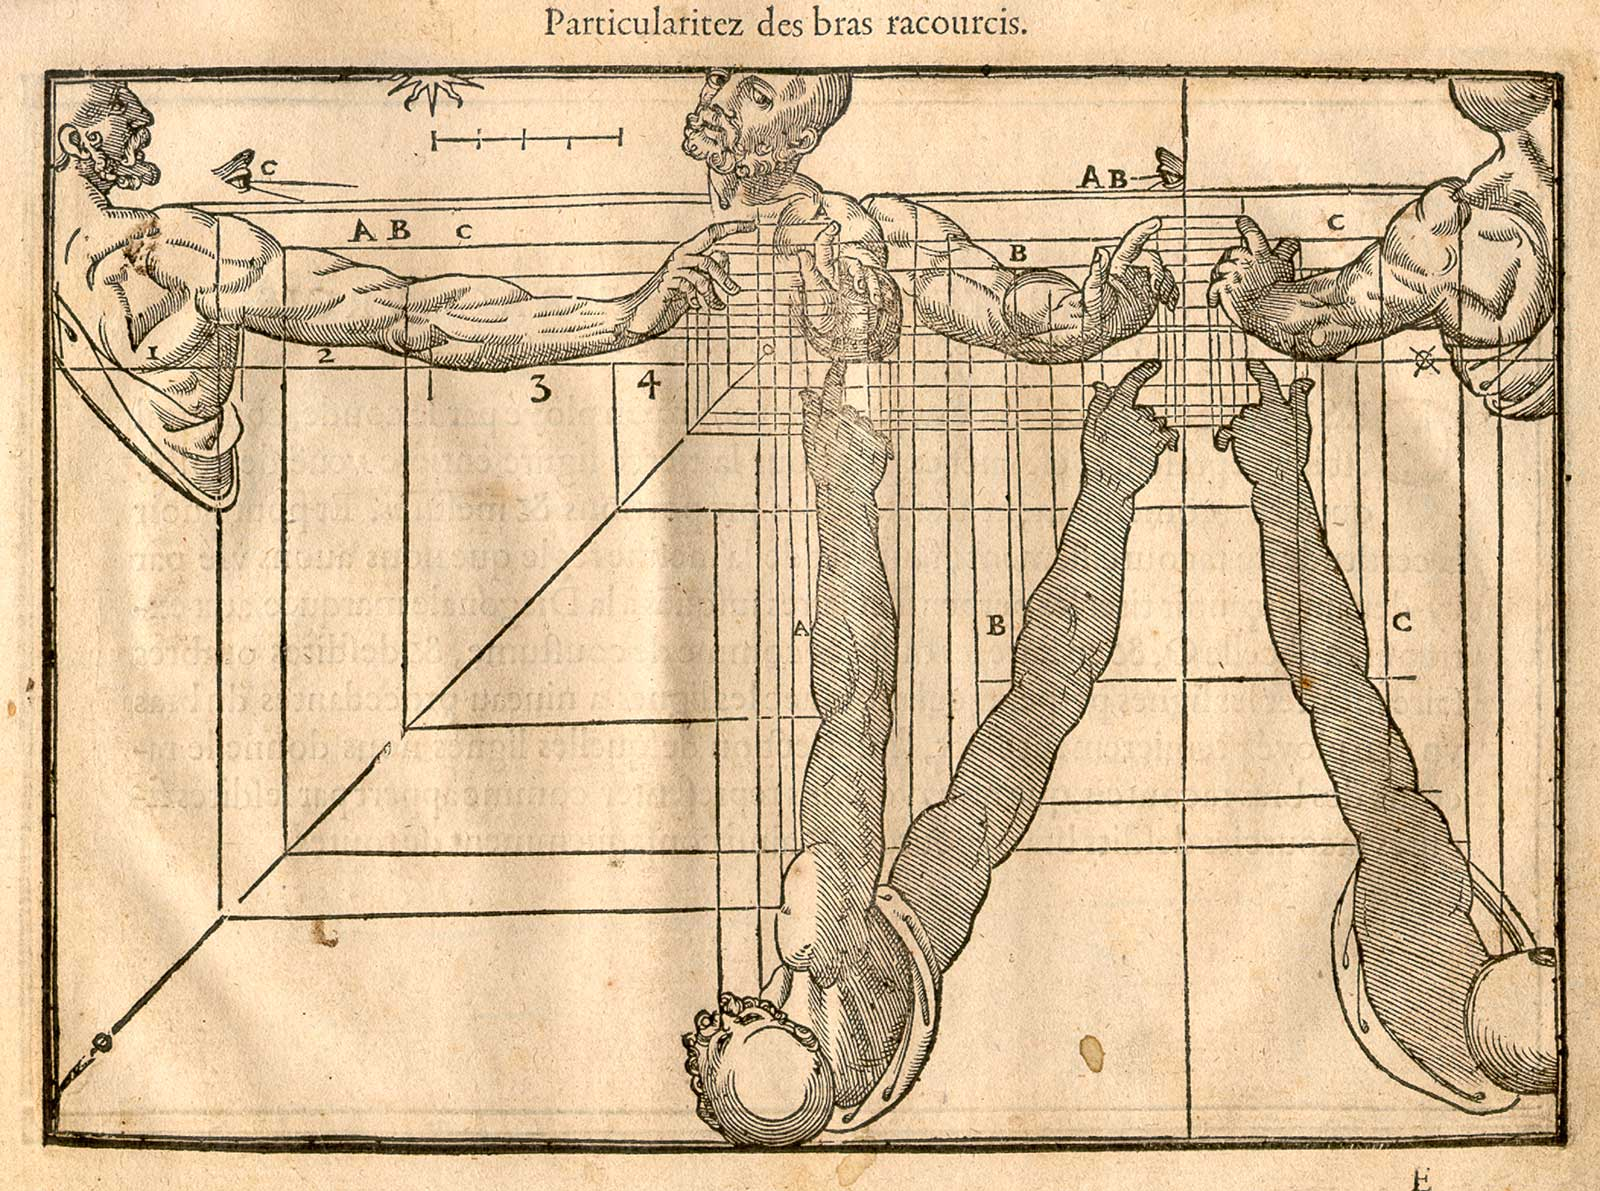 JF Ptak Science Books: An Interesting Three-Part Perspective, 1560